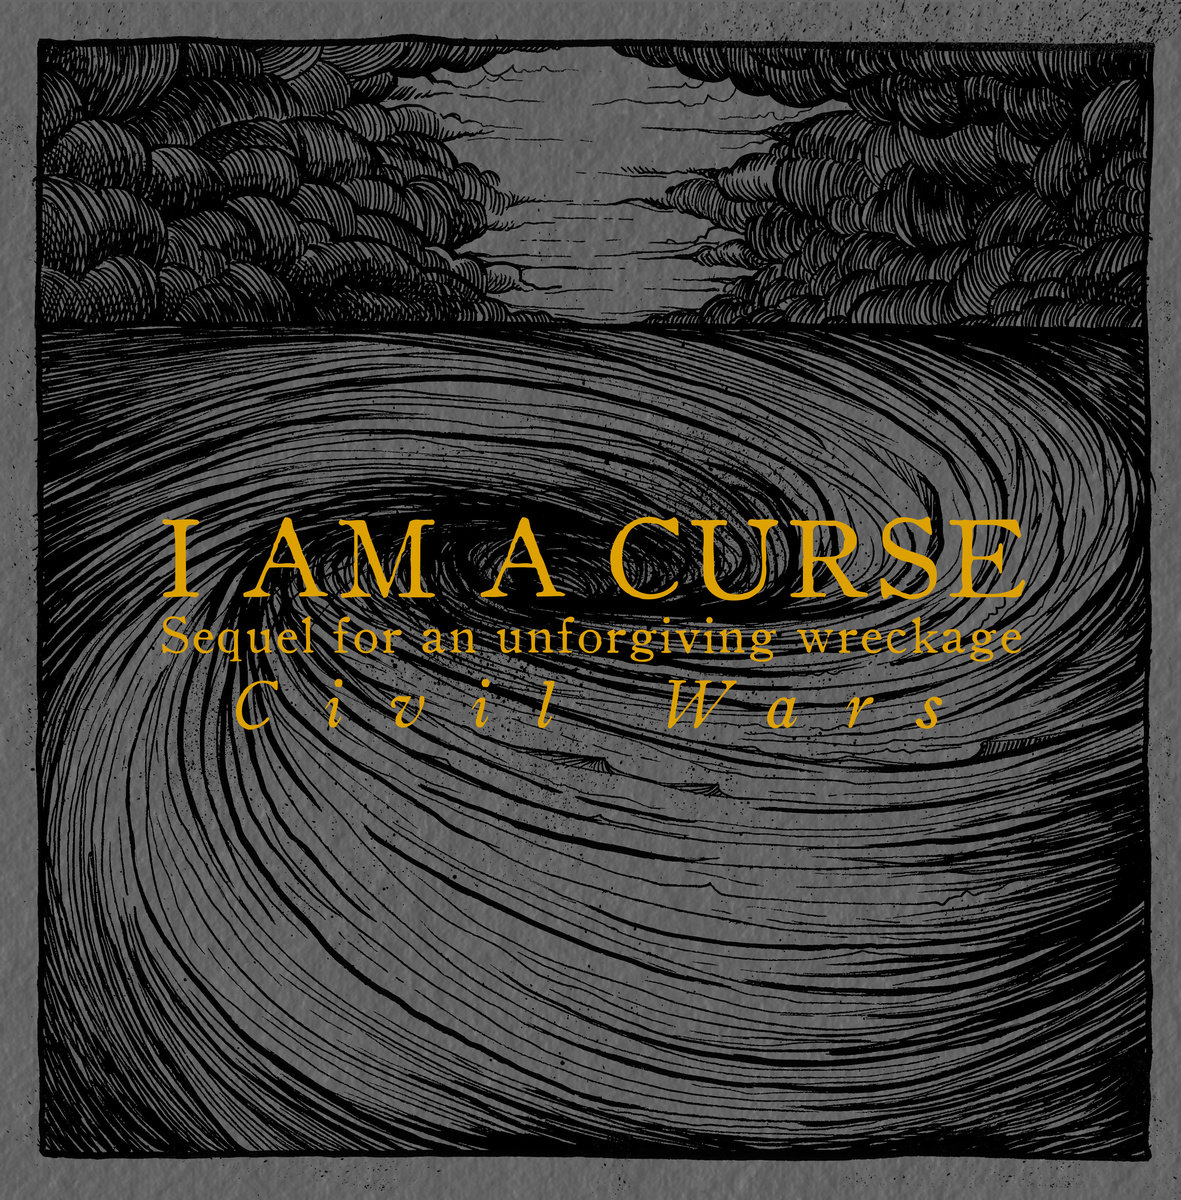 I AM A CURSE Sequel for an Unforgiving Wreckage : Civil Wars - Vinyl LP (black)